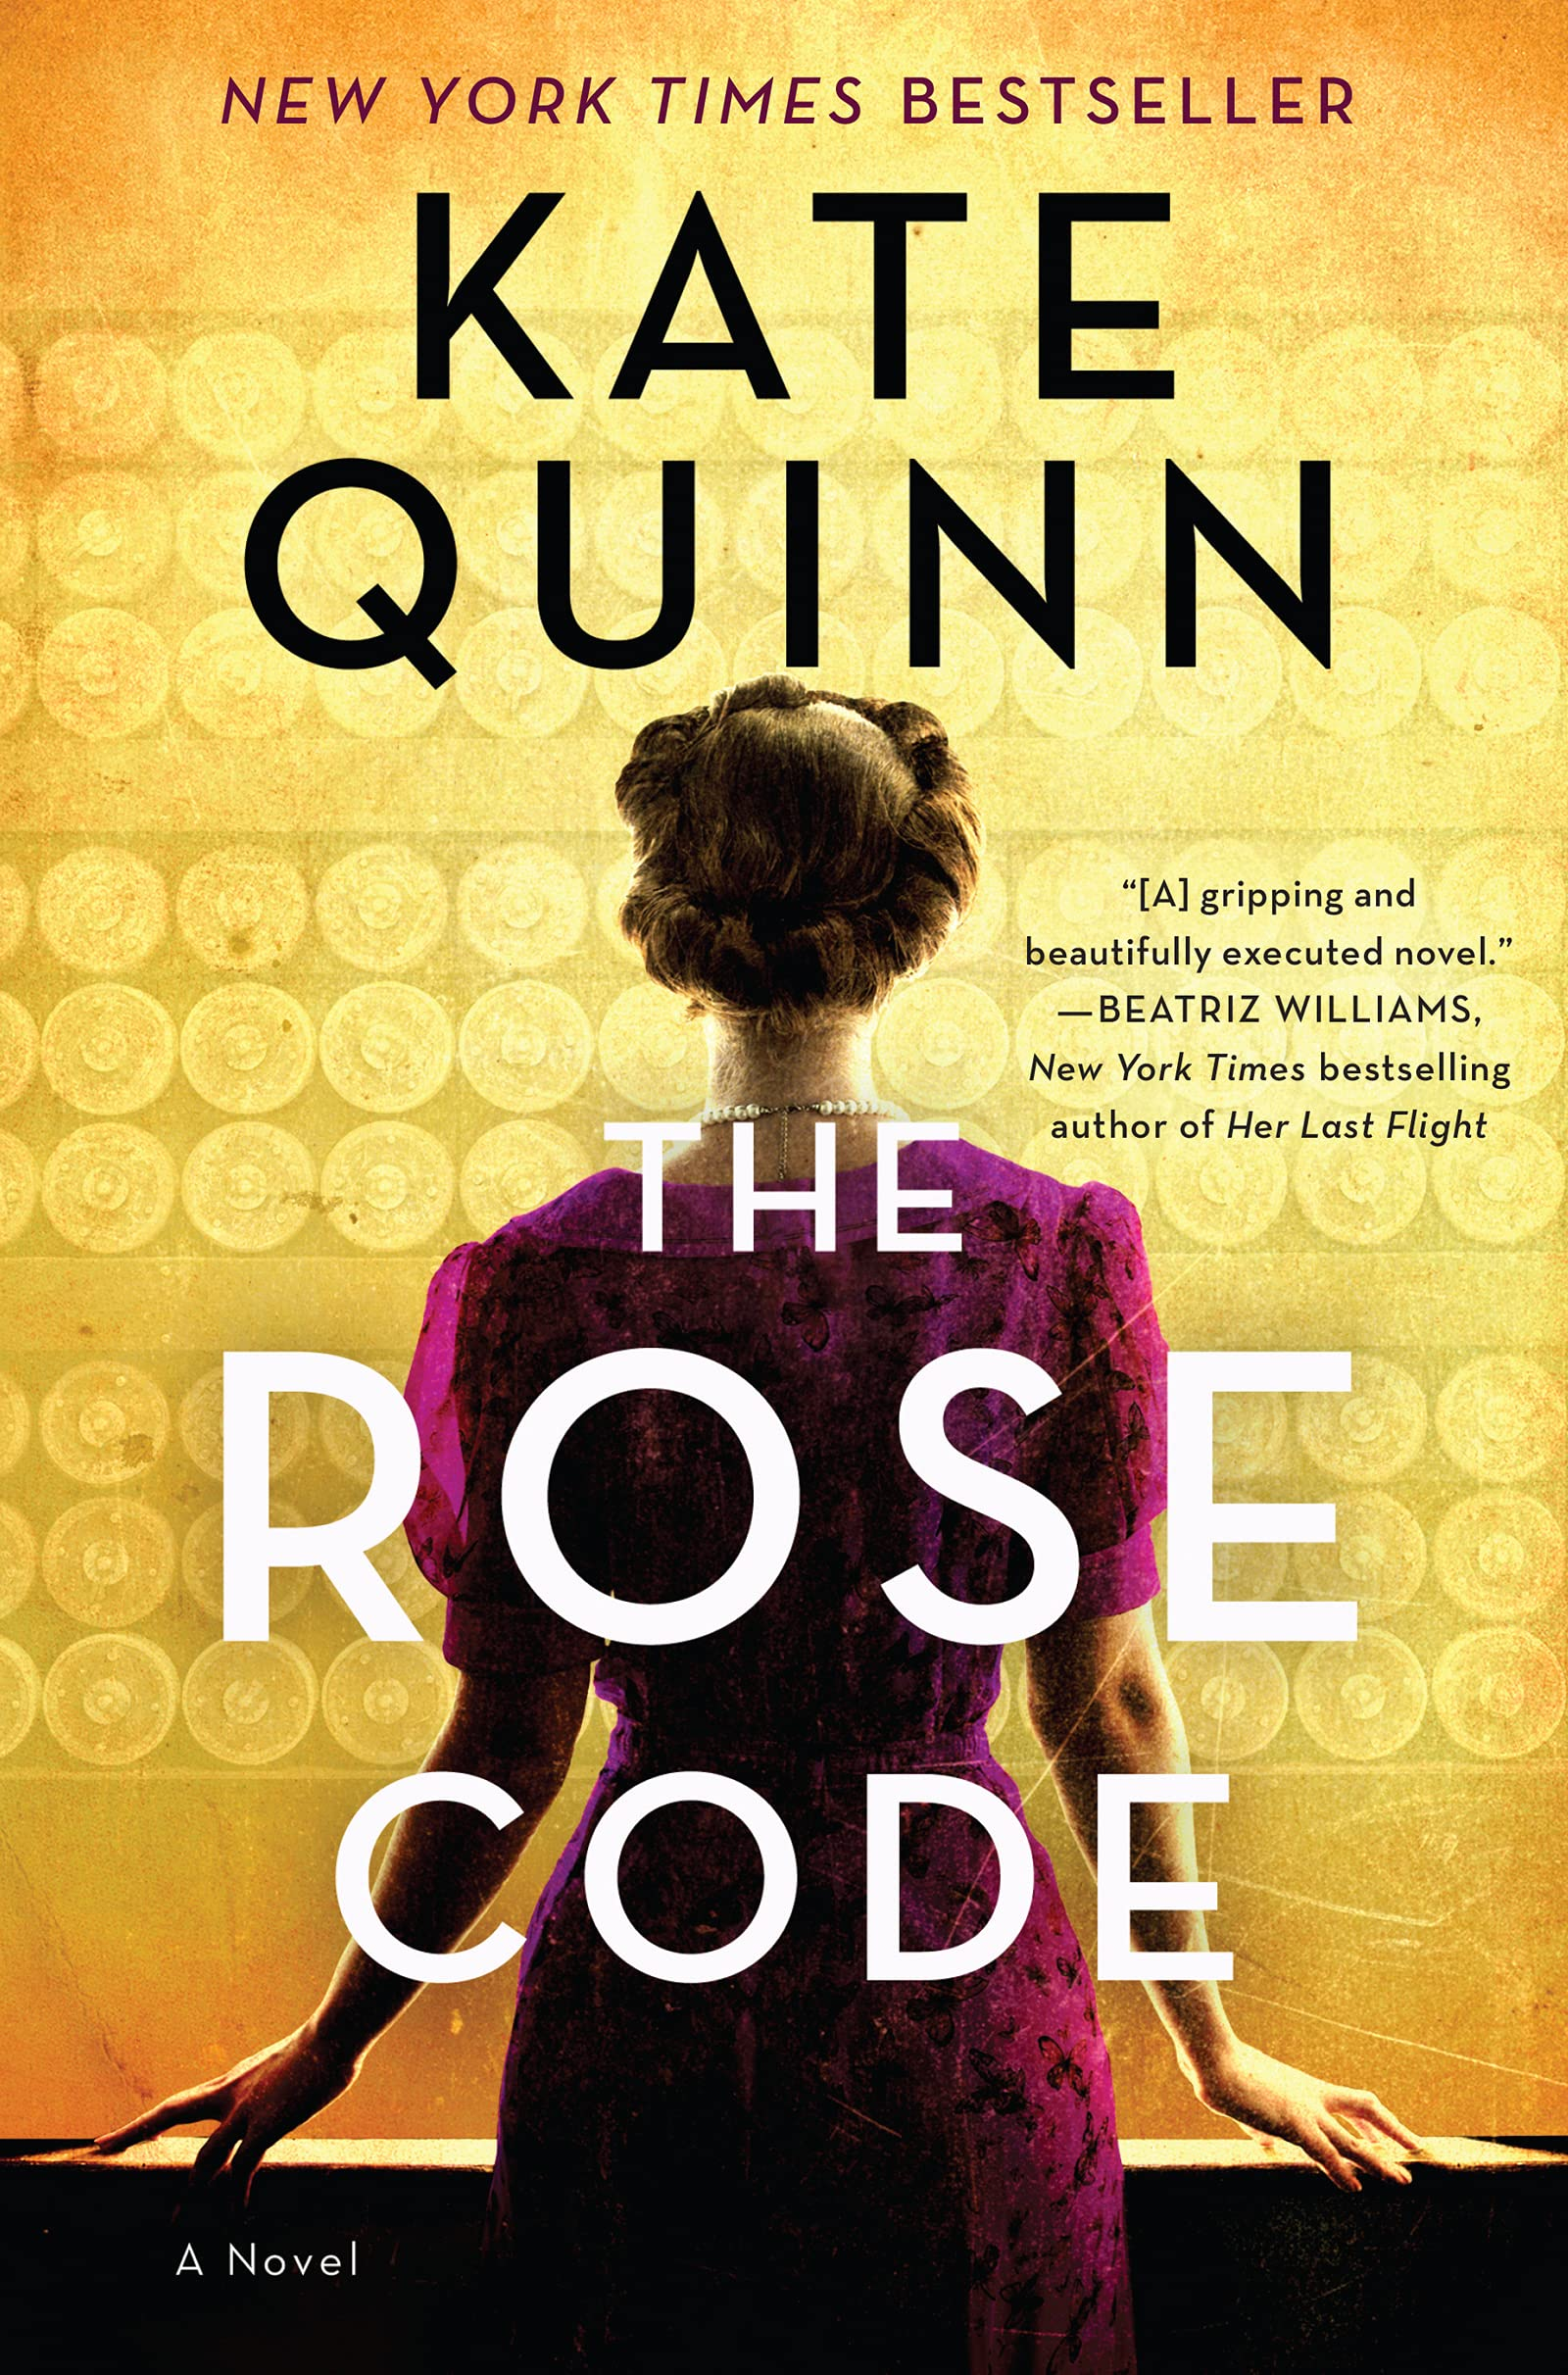 Cover image of The Rose Code by Kate Quinn